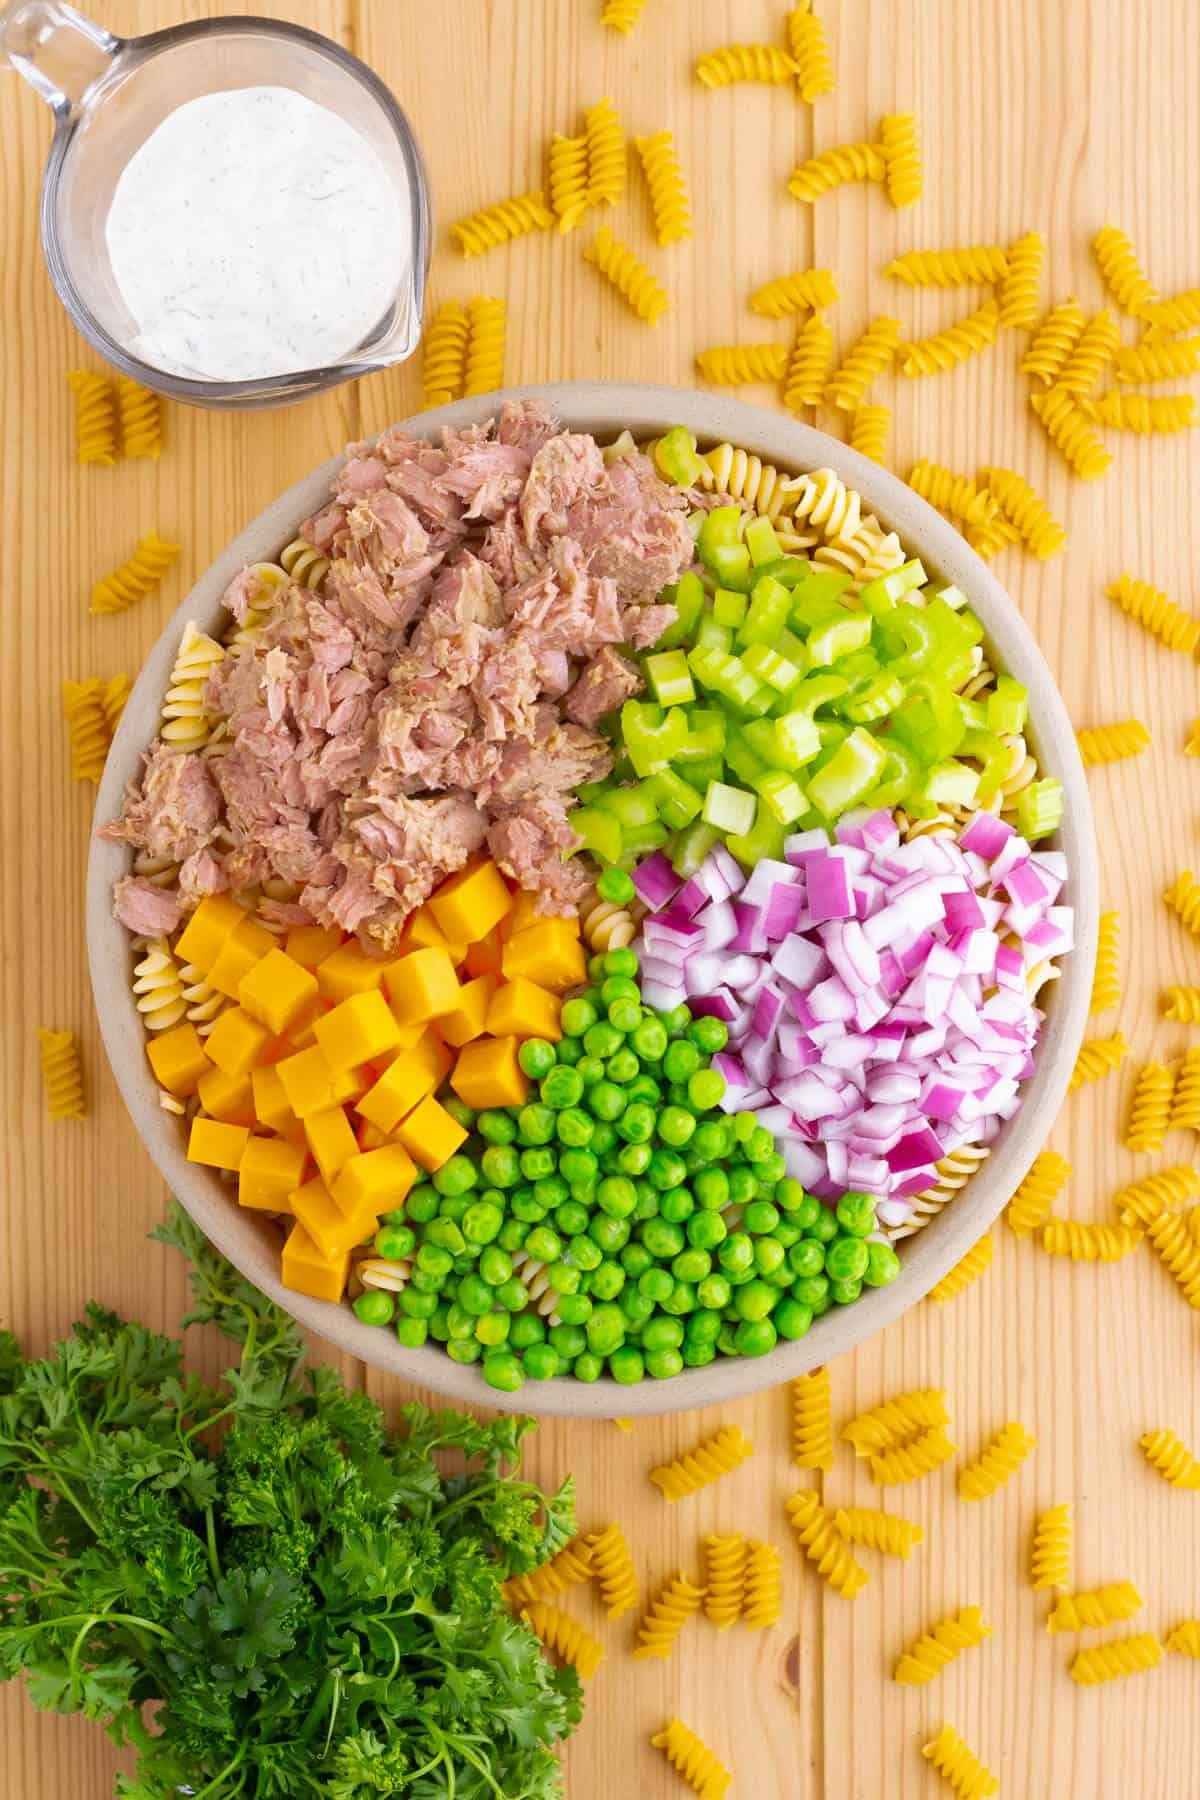 A bowl with tuna pasta salad ingredients divided into sections.